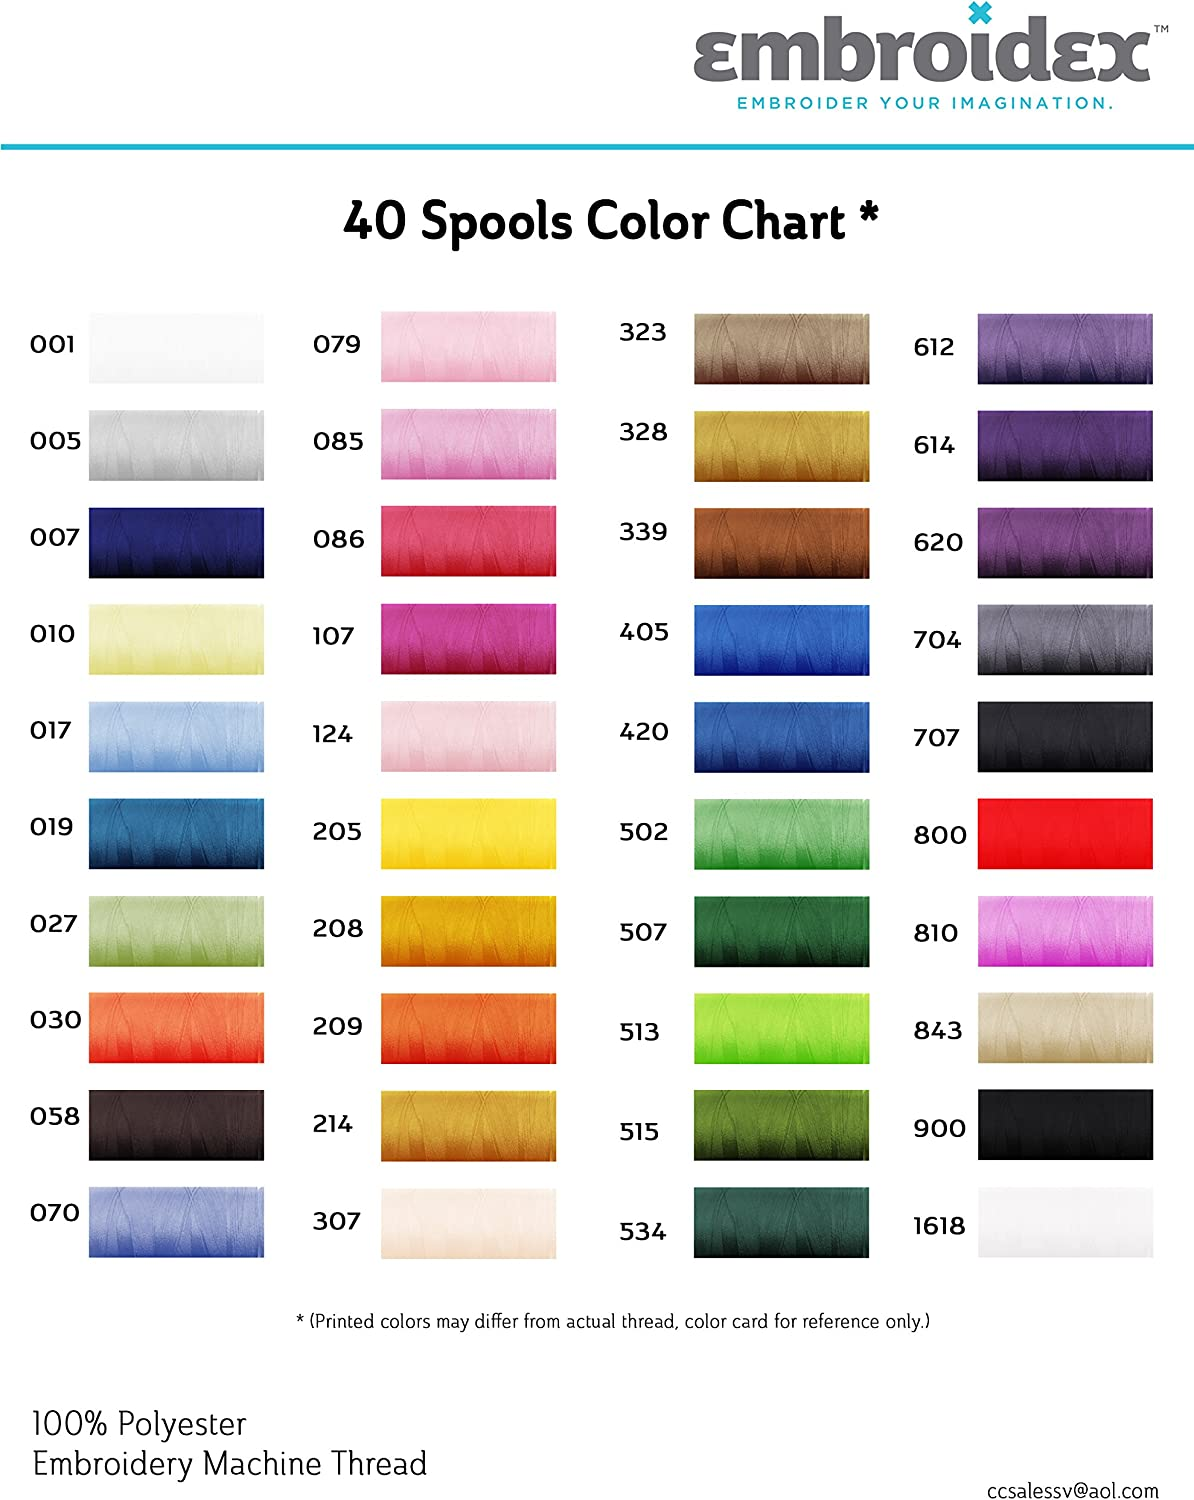 Embroidex 100 Spools Polyester Embroidery Machine Thread STUNNING COLORS